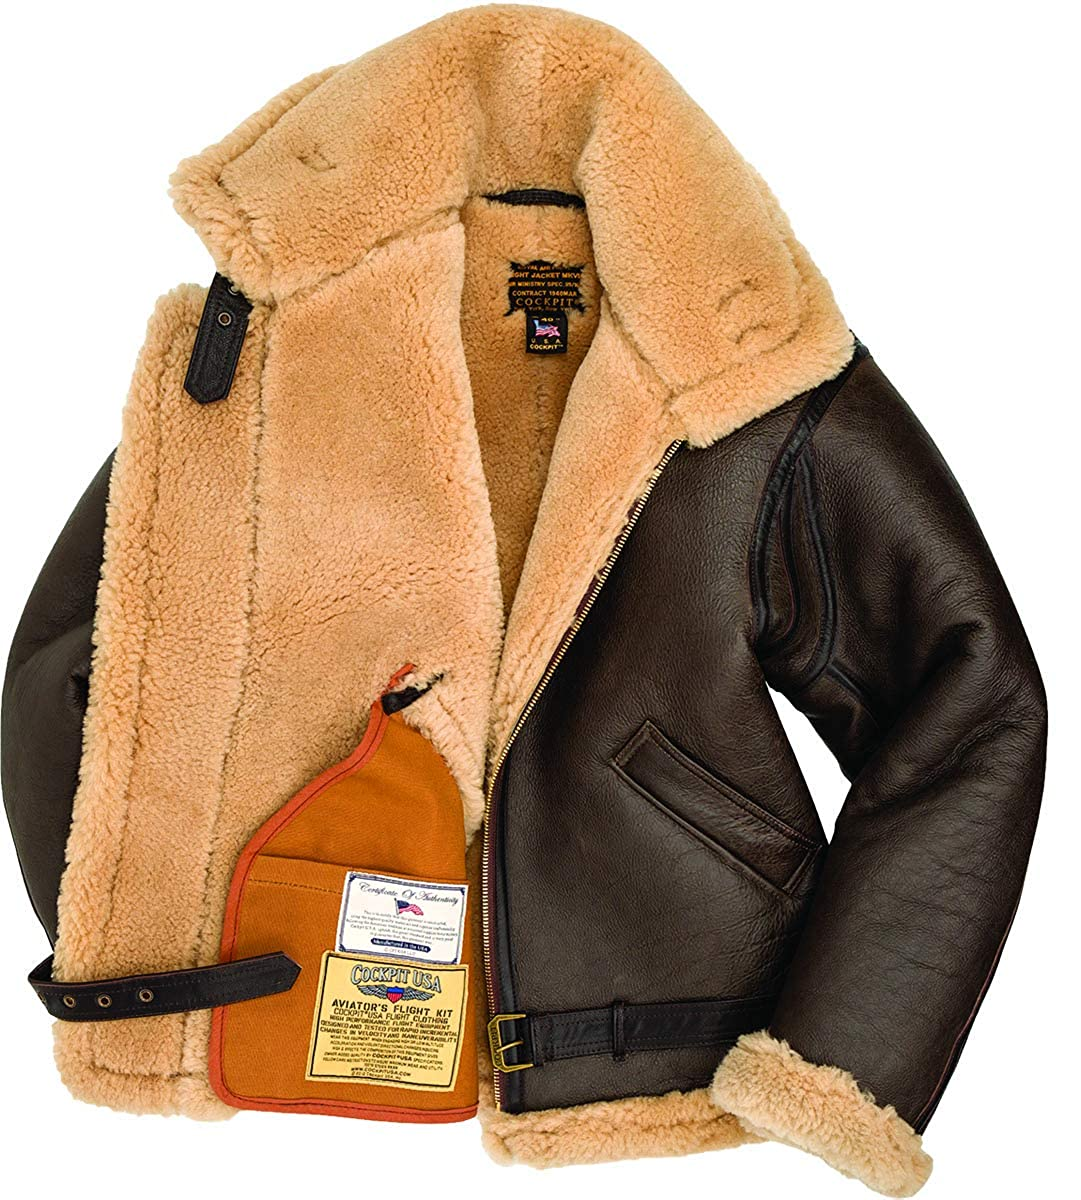 e622ccb25 Cockpit USA R.A.F Brown Sheepskin Leather Bomber Jacket at Amazon ...